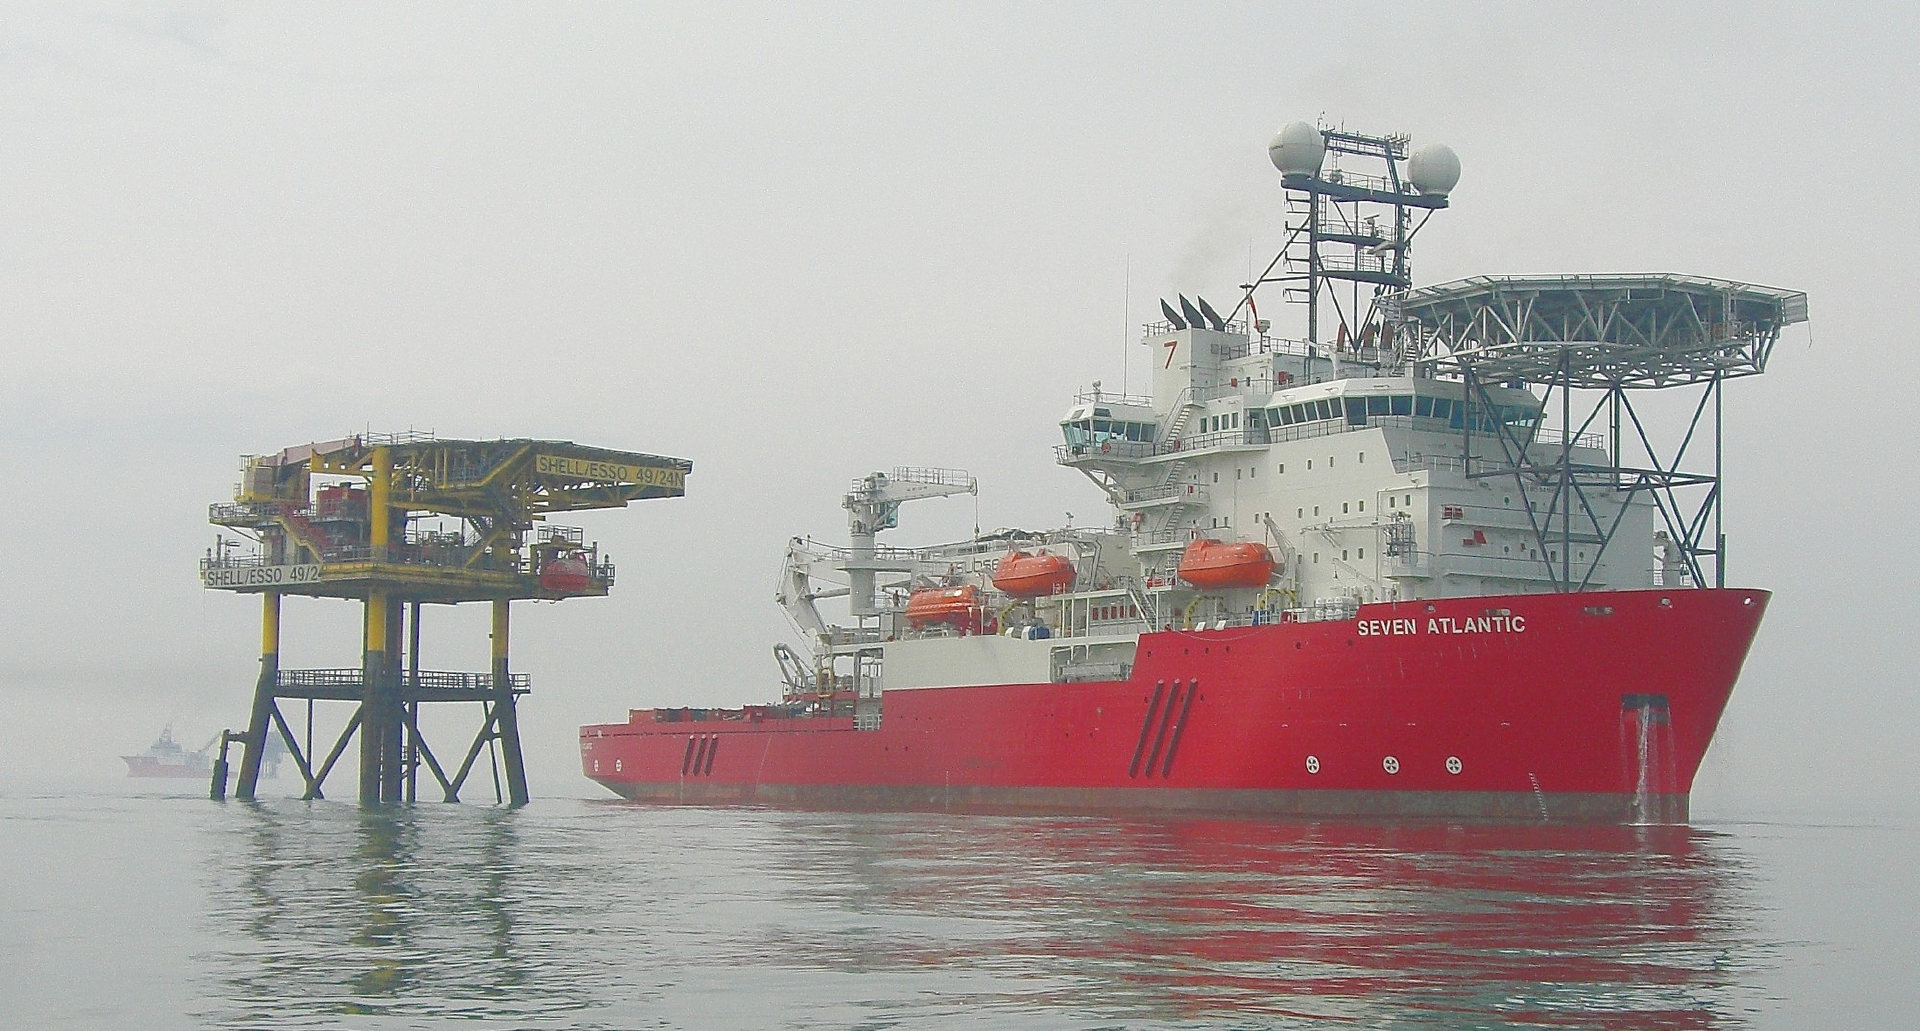 Subsea 7's Seven Atlantic vessel on operations in the North Sea